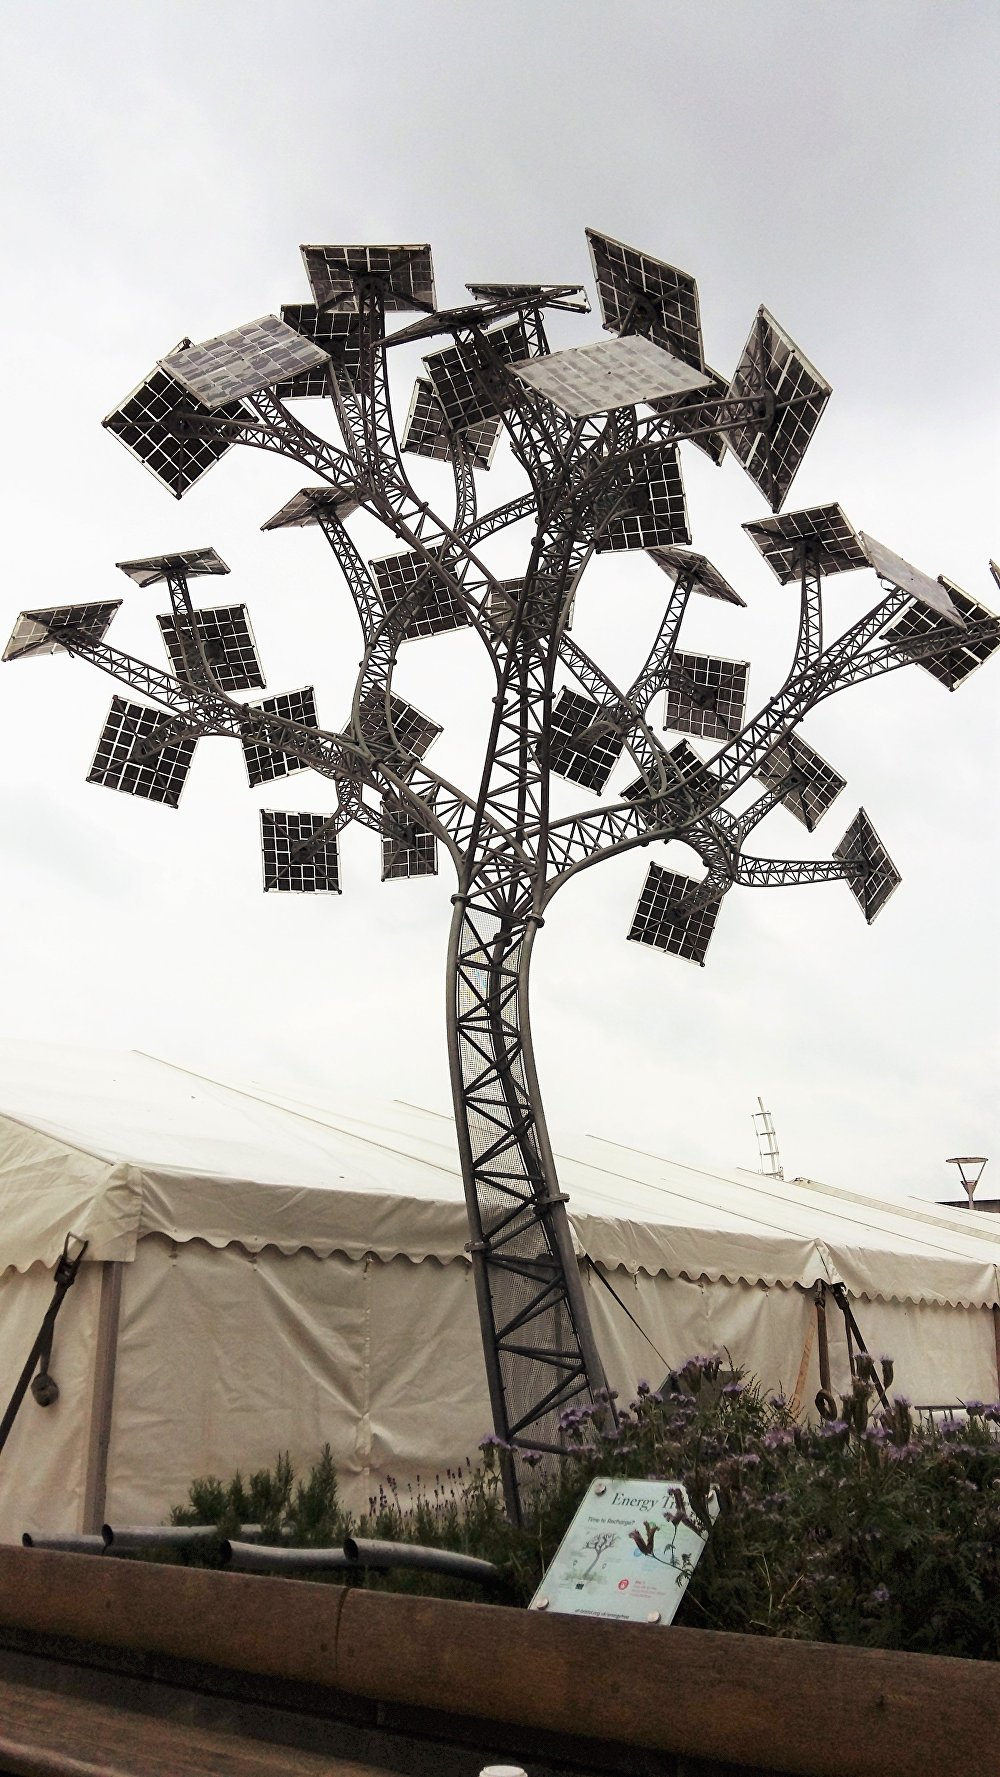 The Energy Tree, in Bristol, provides free mobile phone charging points and wi-fi in the English city.